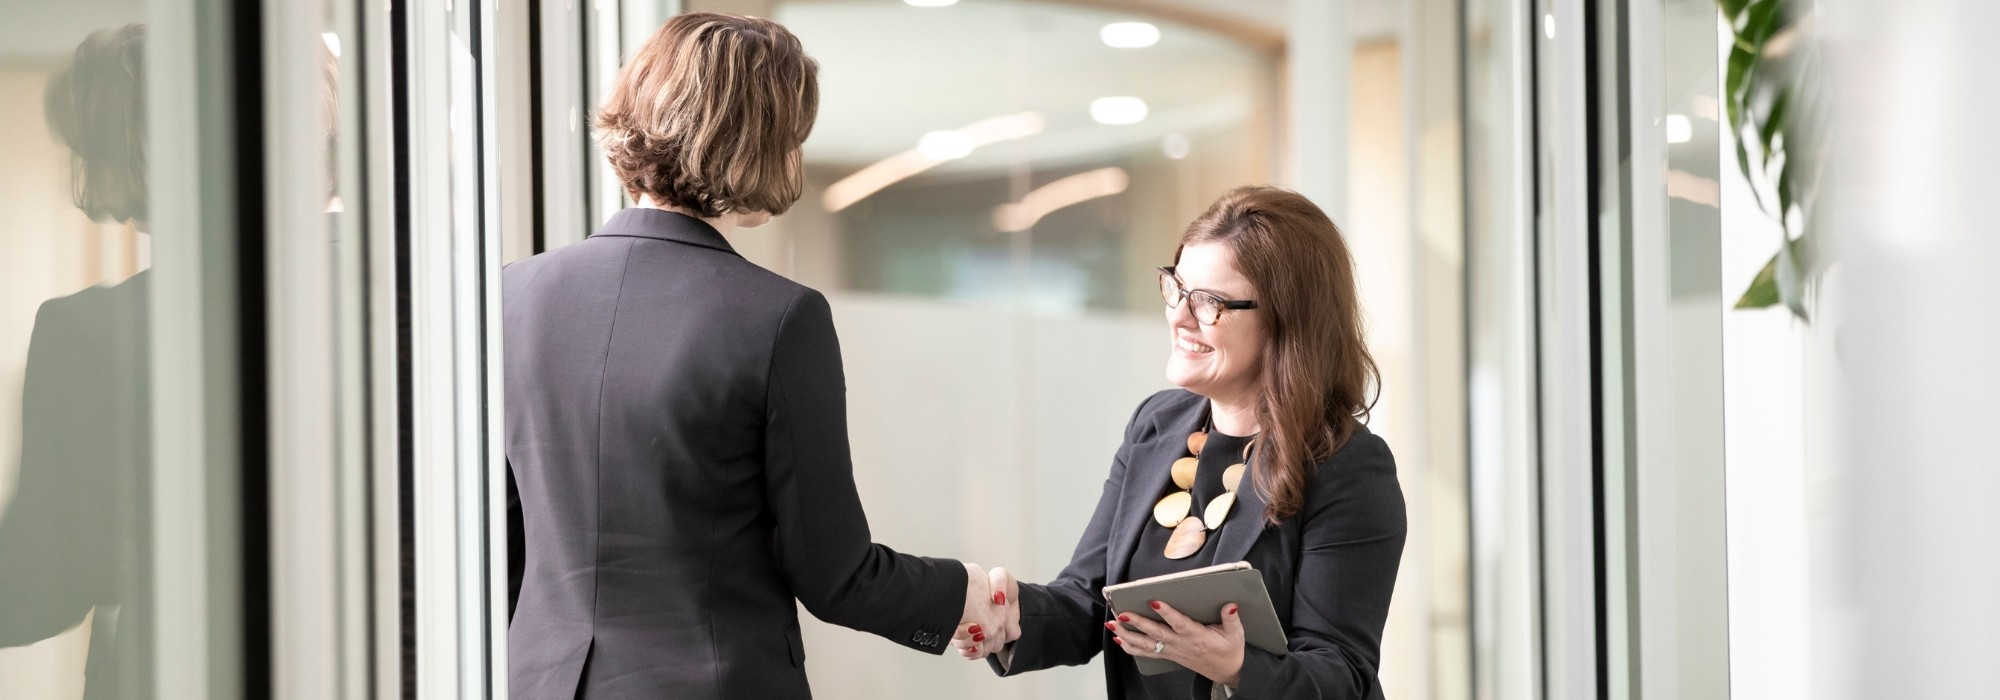 Recruiter shaking hands with client